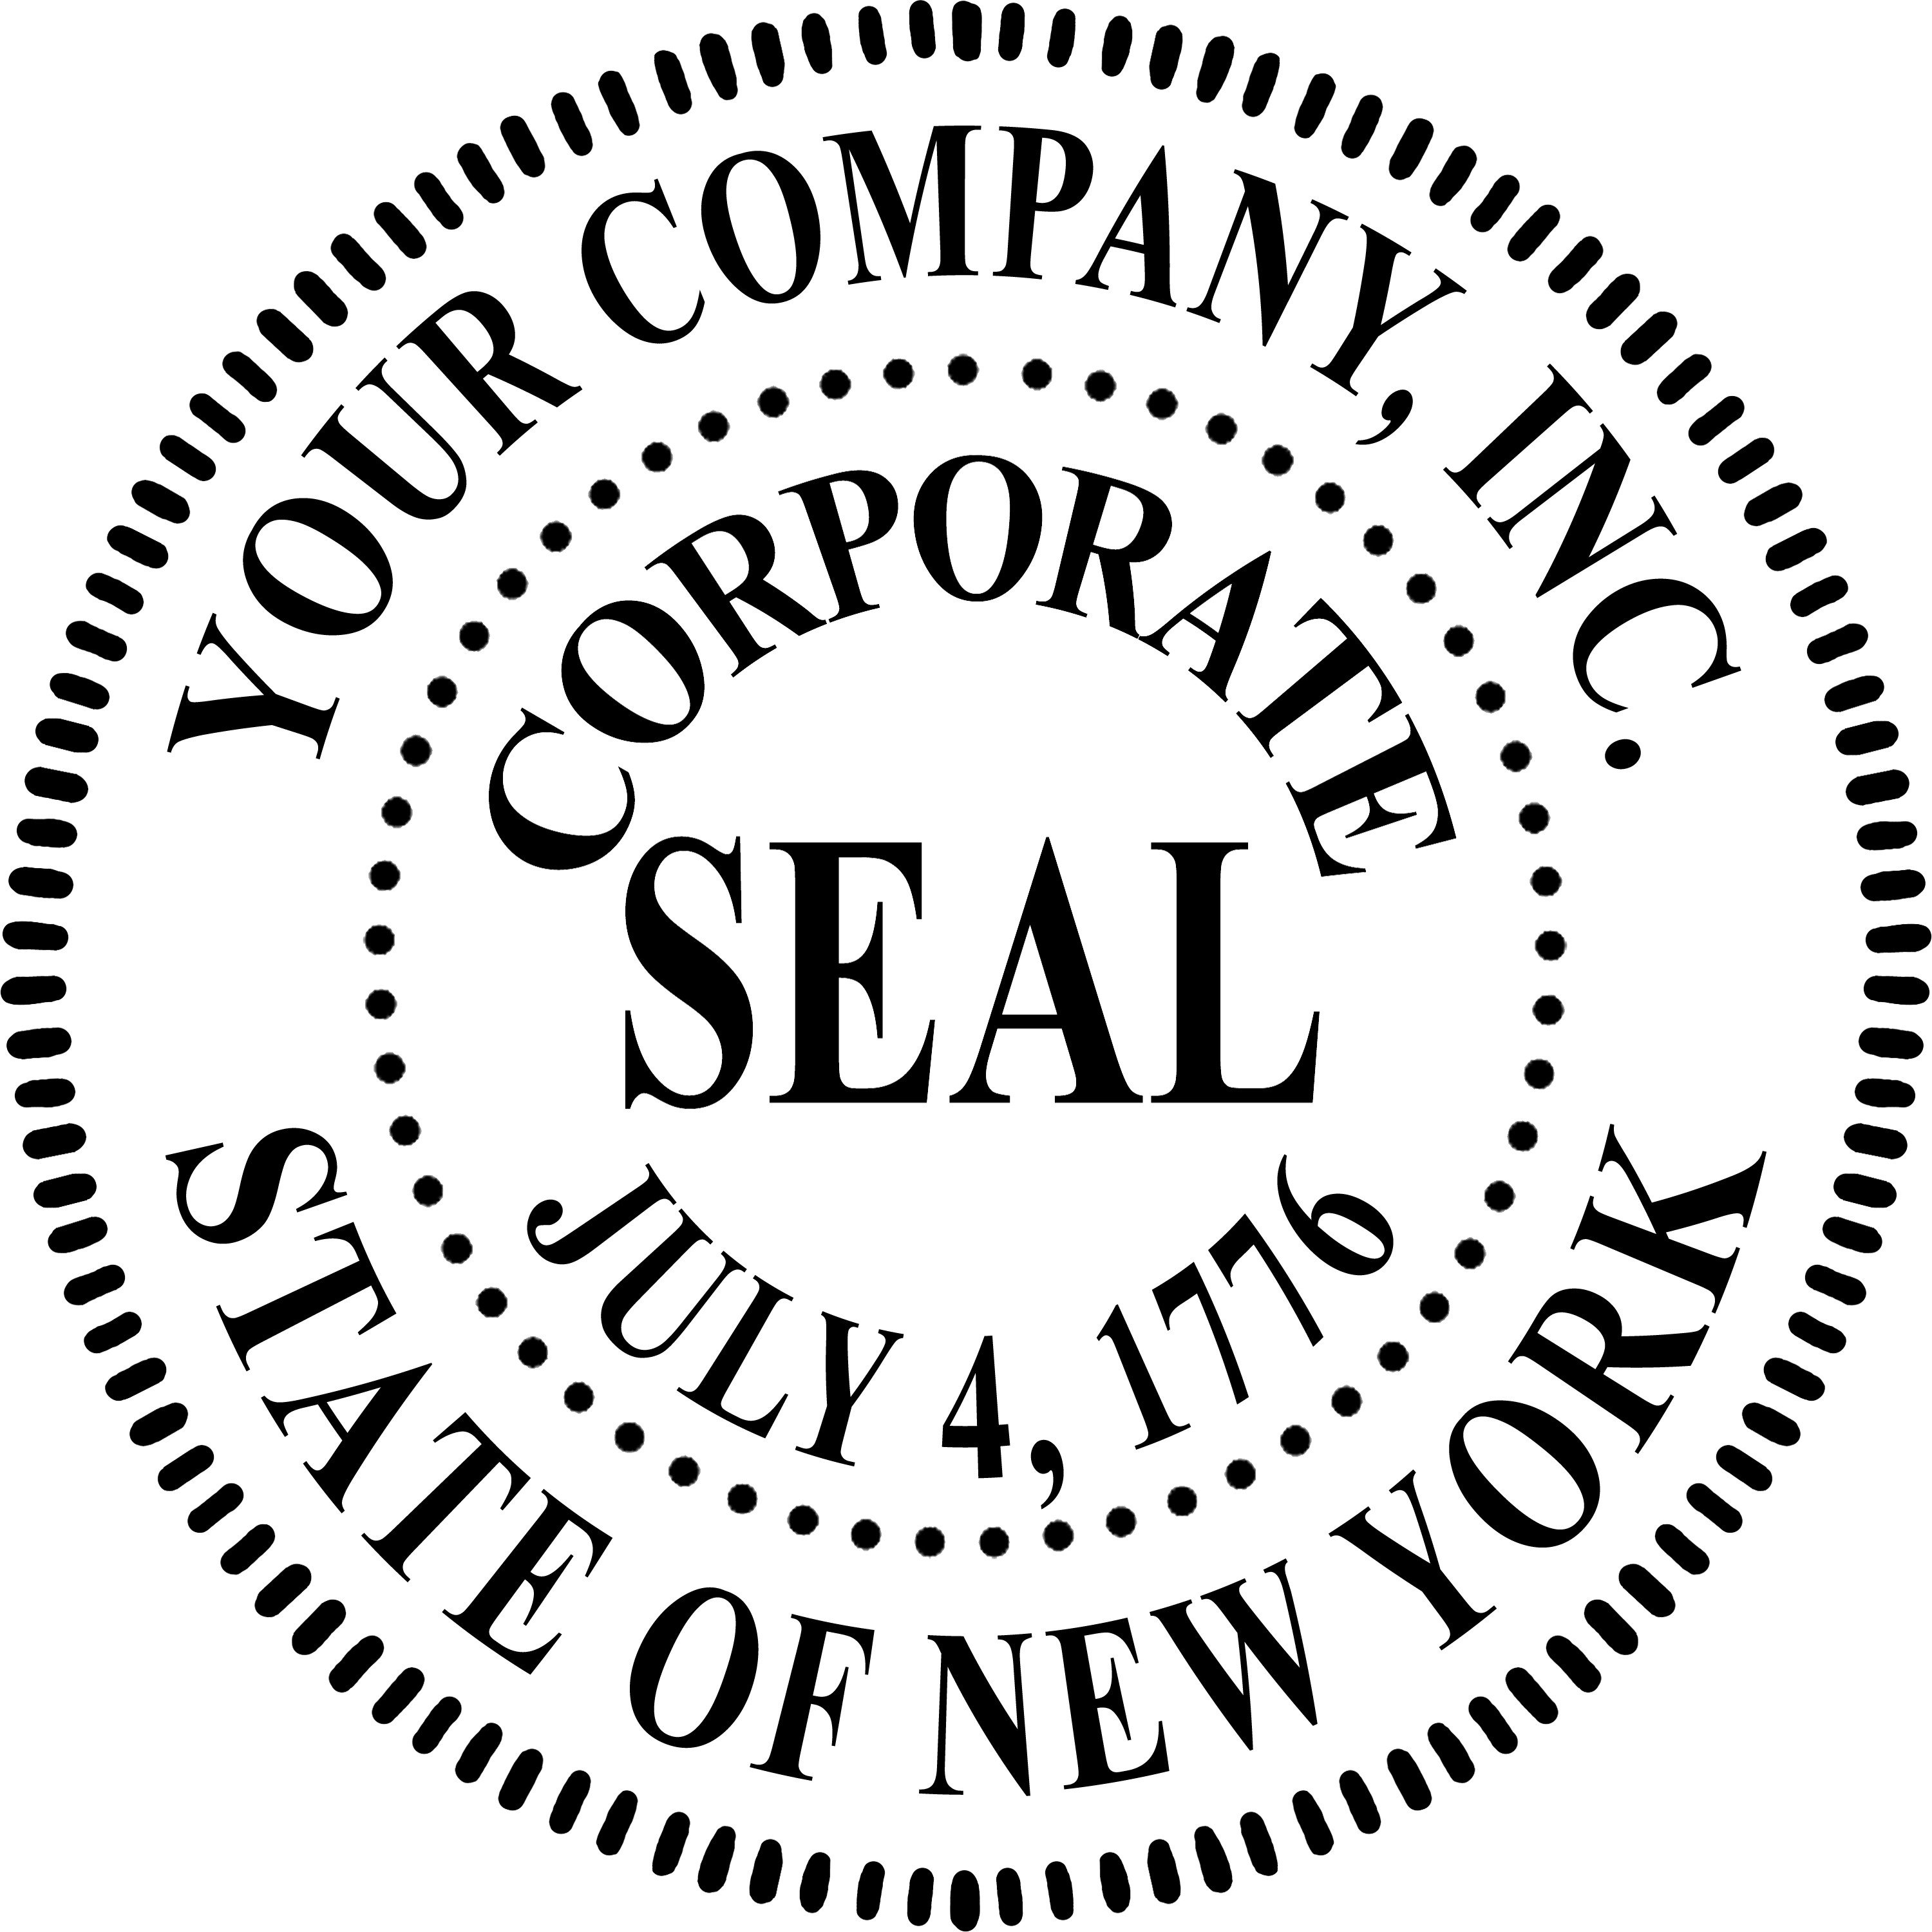 Digital Corporate Seal Template Corporation Setup & Dissolution R&g Brenner